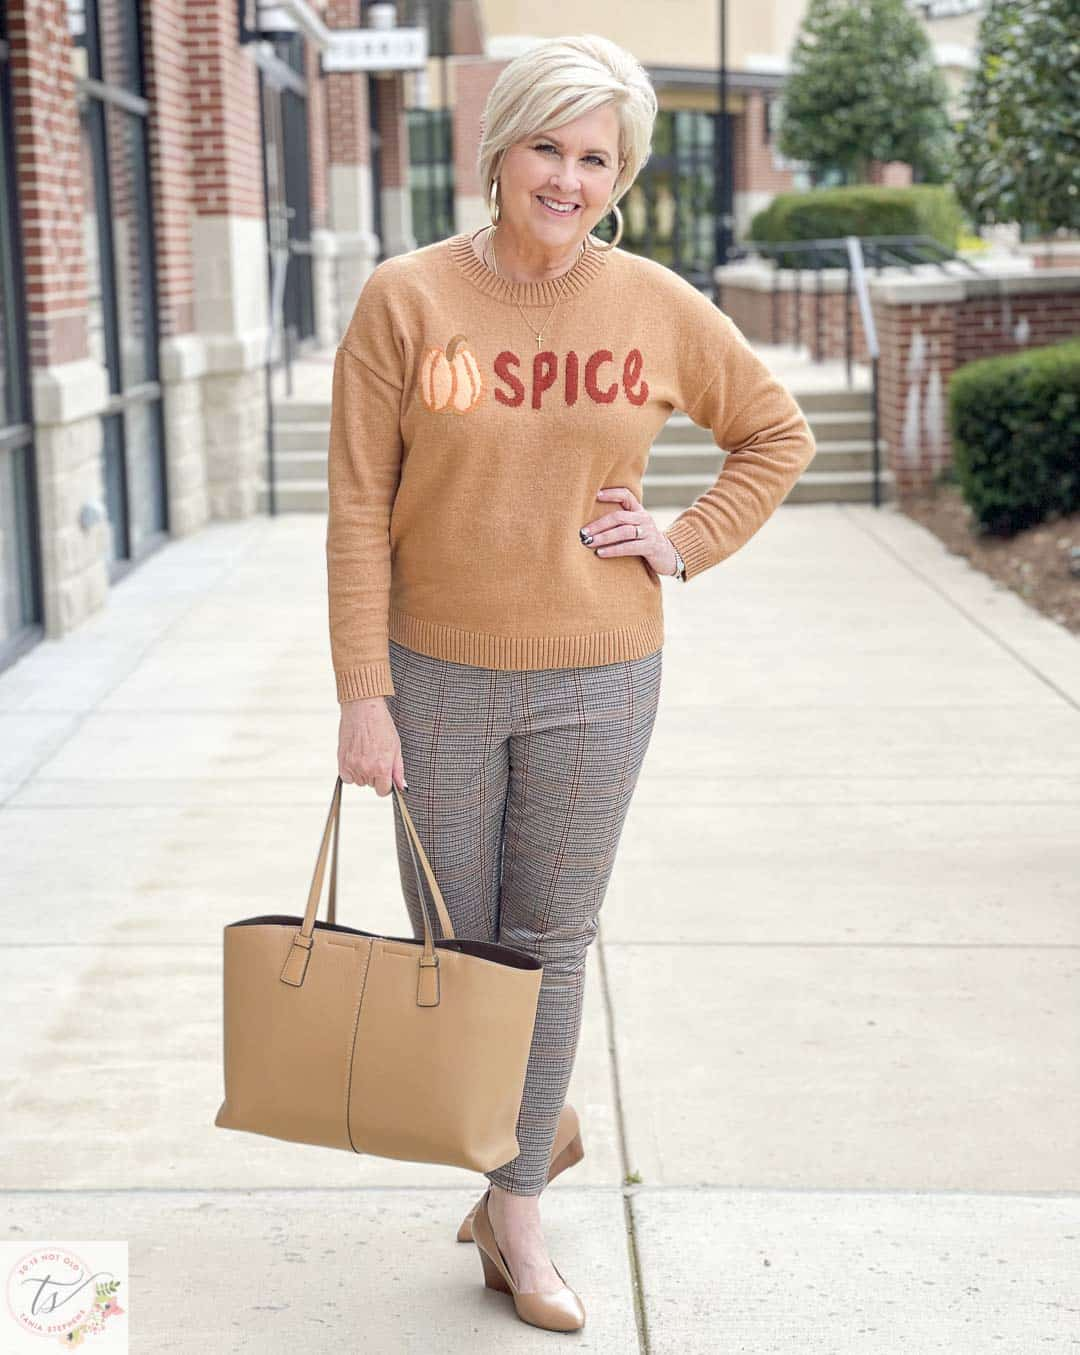 Over 40 Fashion Blogger, Tania Stephens, is wearing a Pumpkin Spice sweater with a pair of taupe wedges, a Tory Burch handbag, and plaid Ponte knit pants